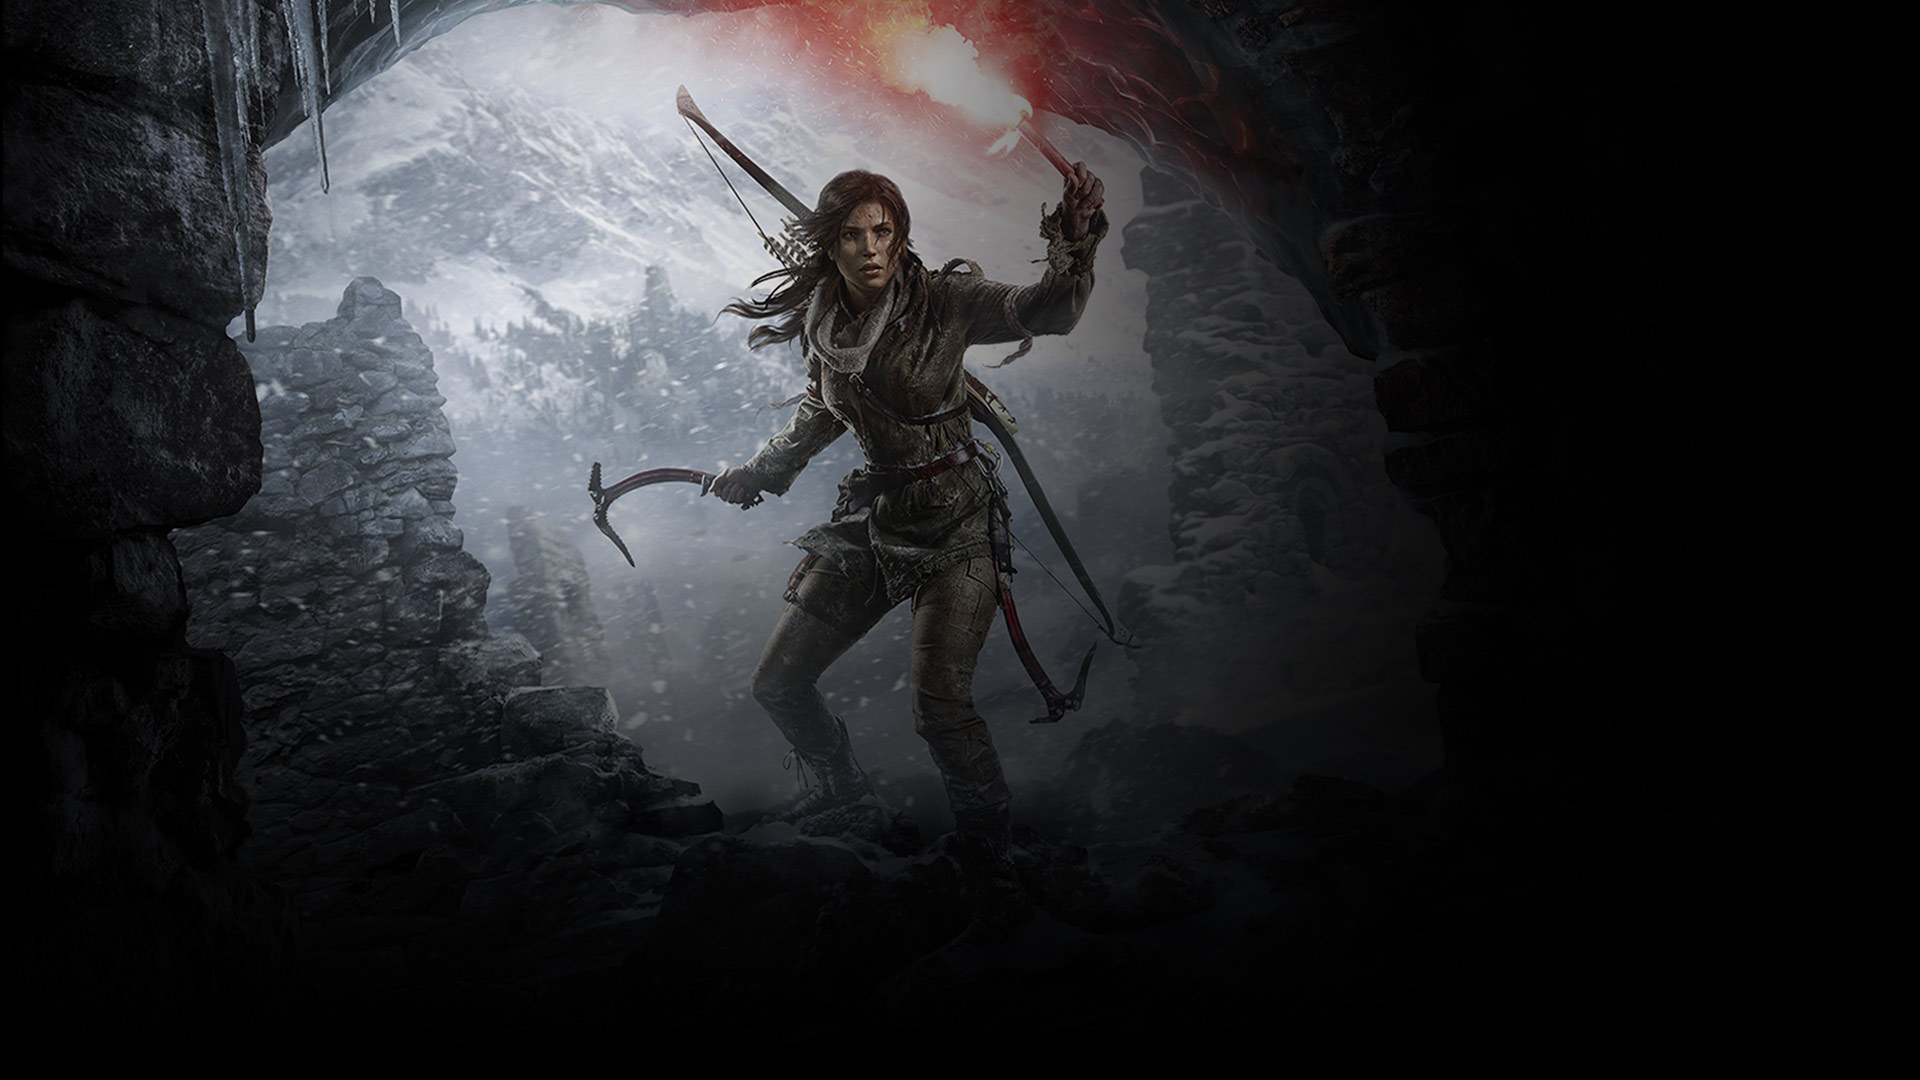 Image of Laura Croft character, from Shadow of the Tomb Raider